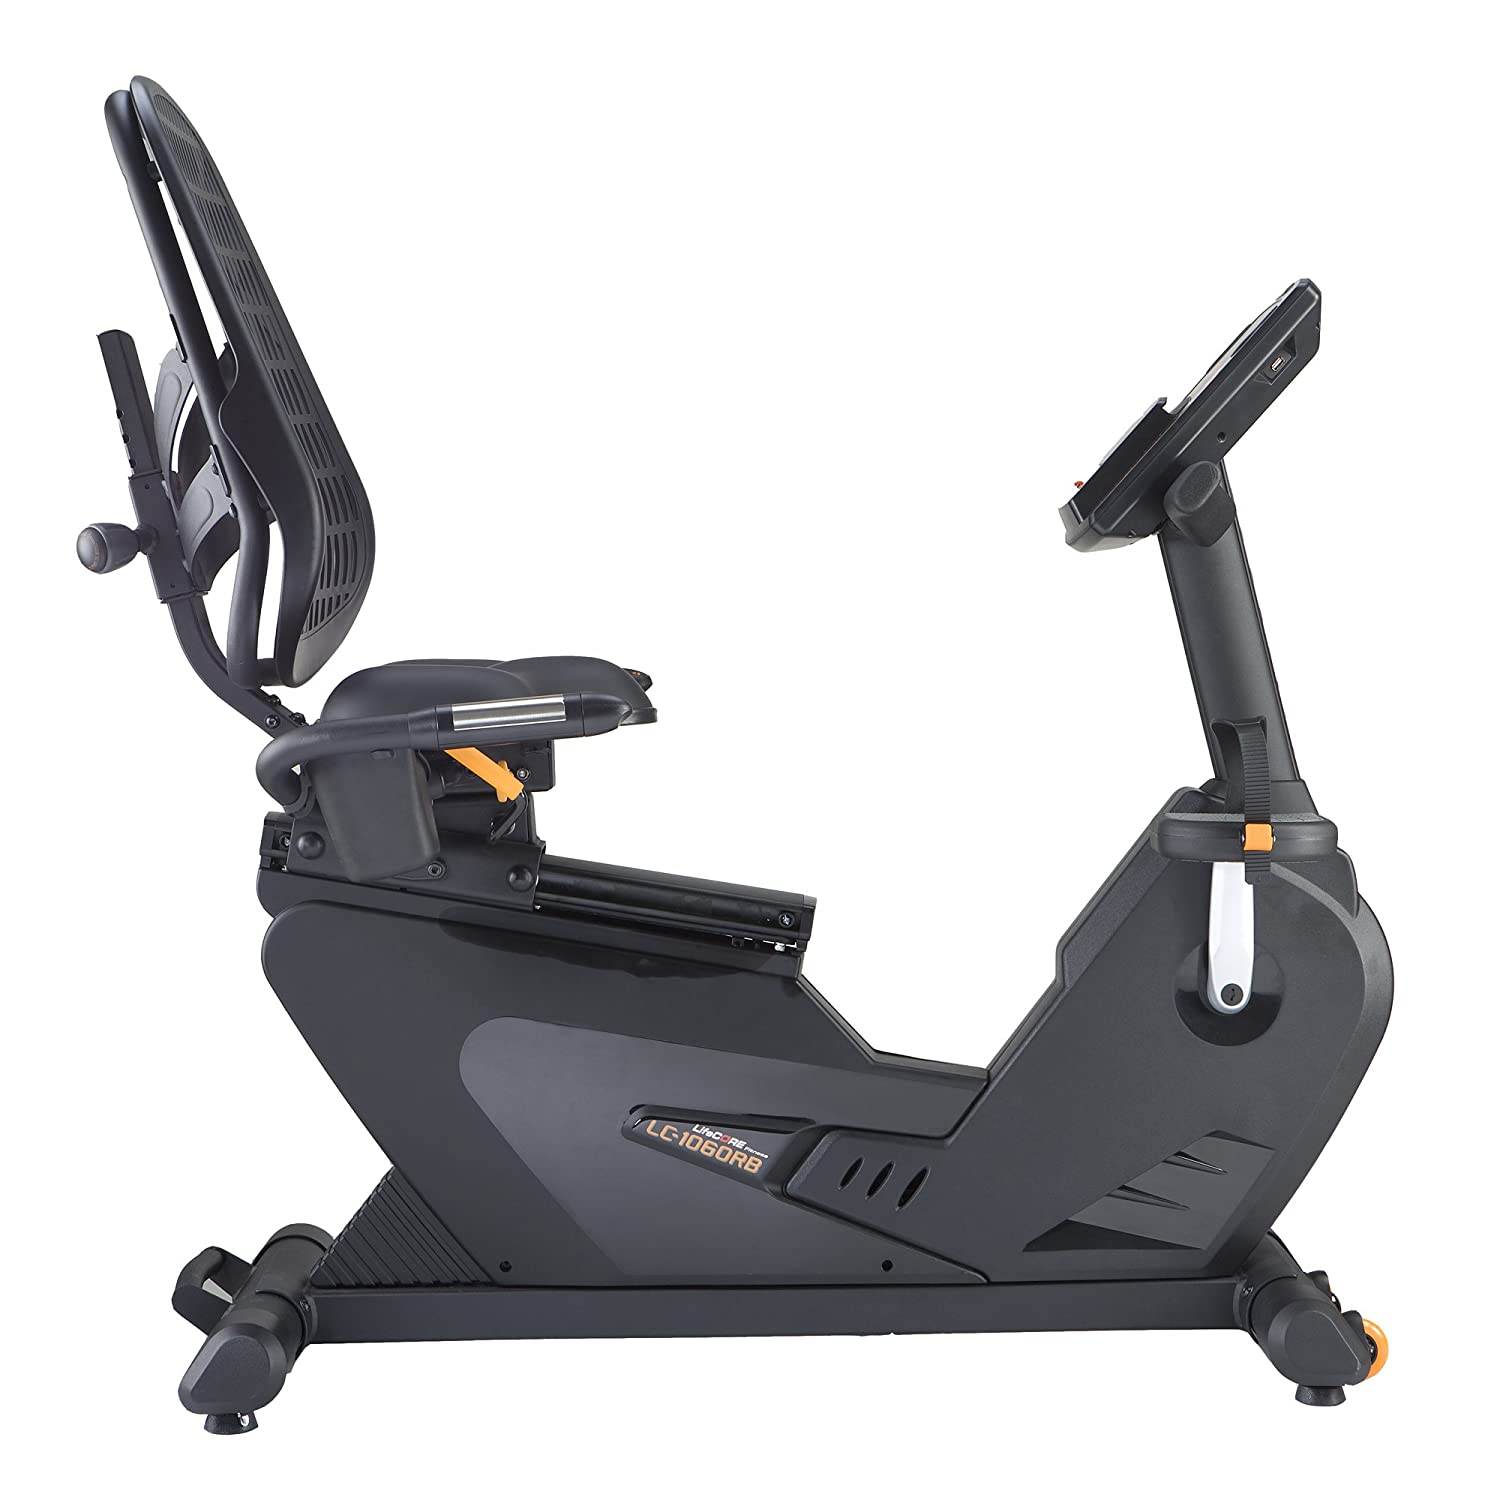 Nordictrack Motor Wiring Harness Lifecore Fitness 1060rb Recumbent Exercise Bike Black Frame Sports Outdoors